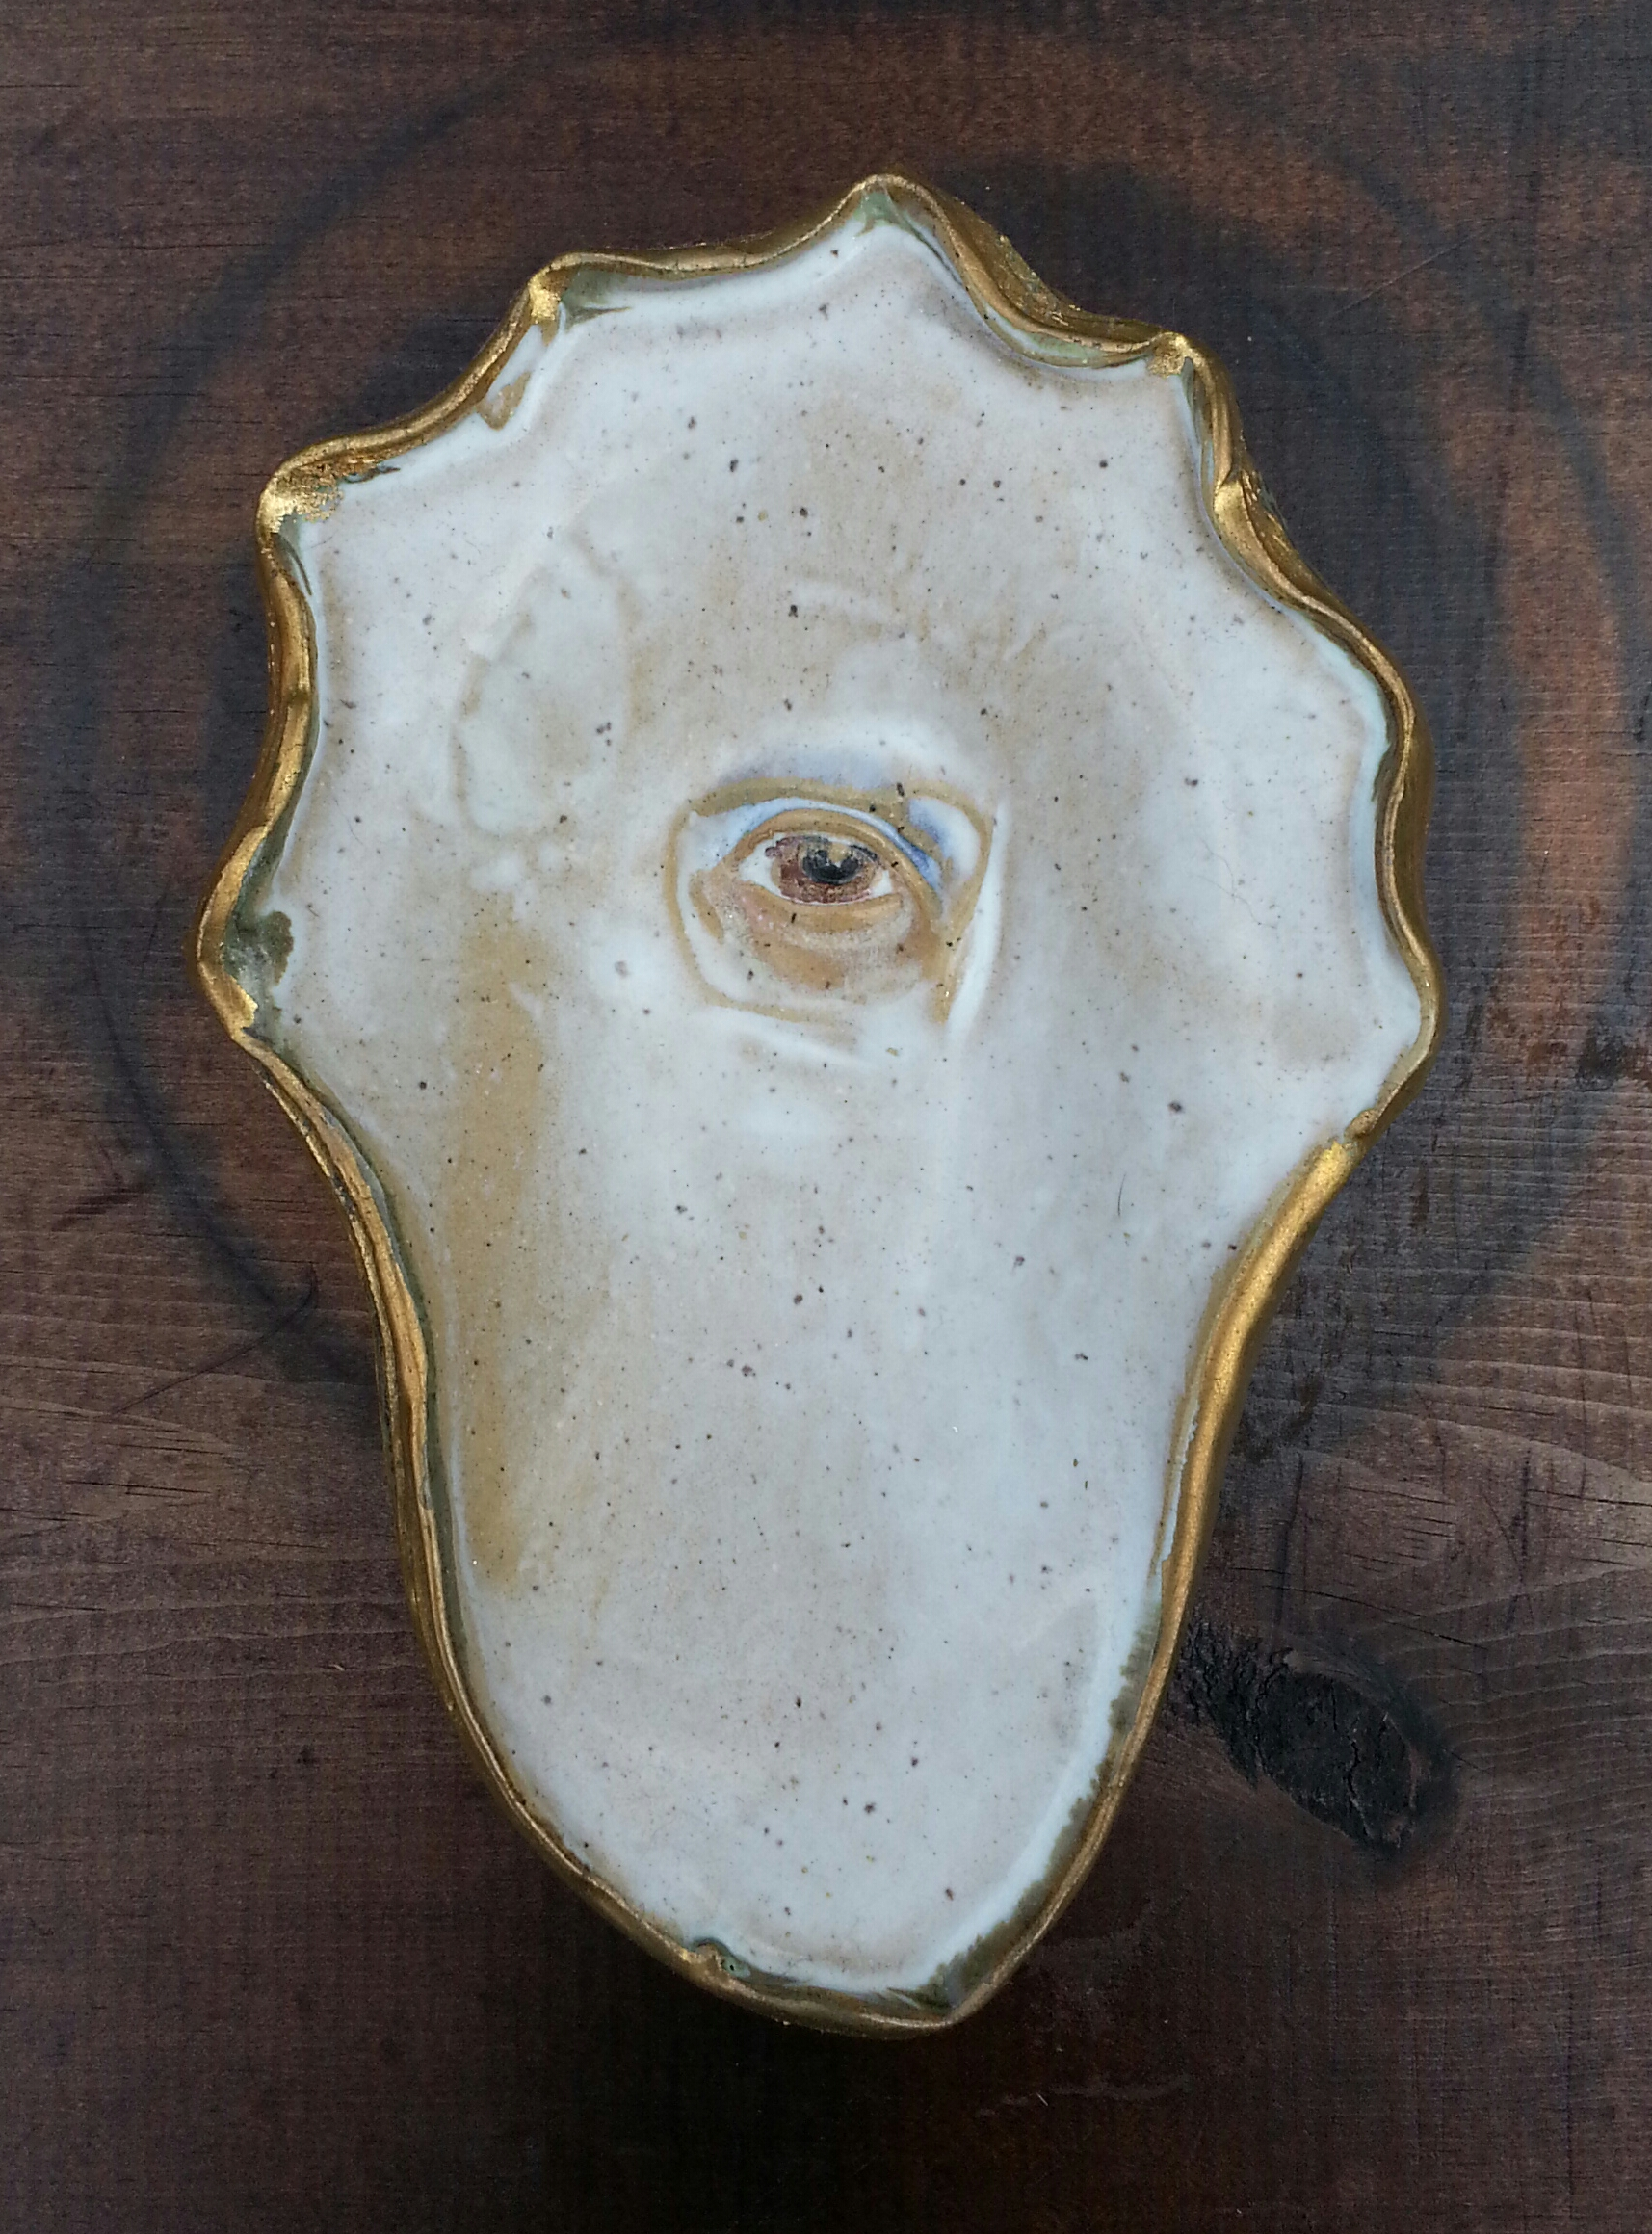 oyster with eye.jpg